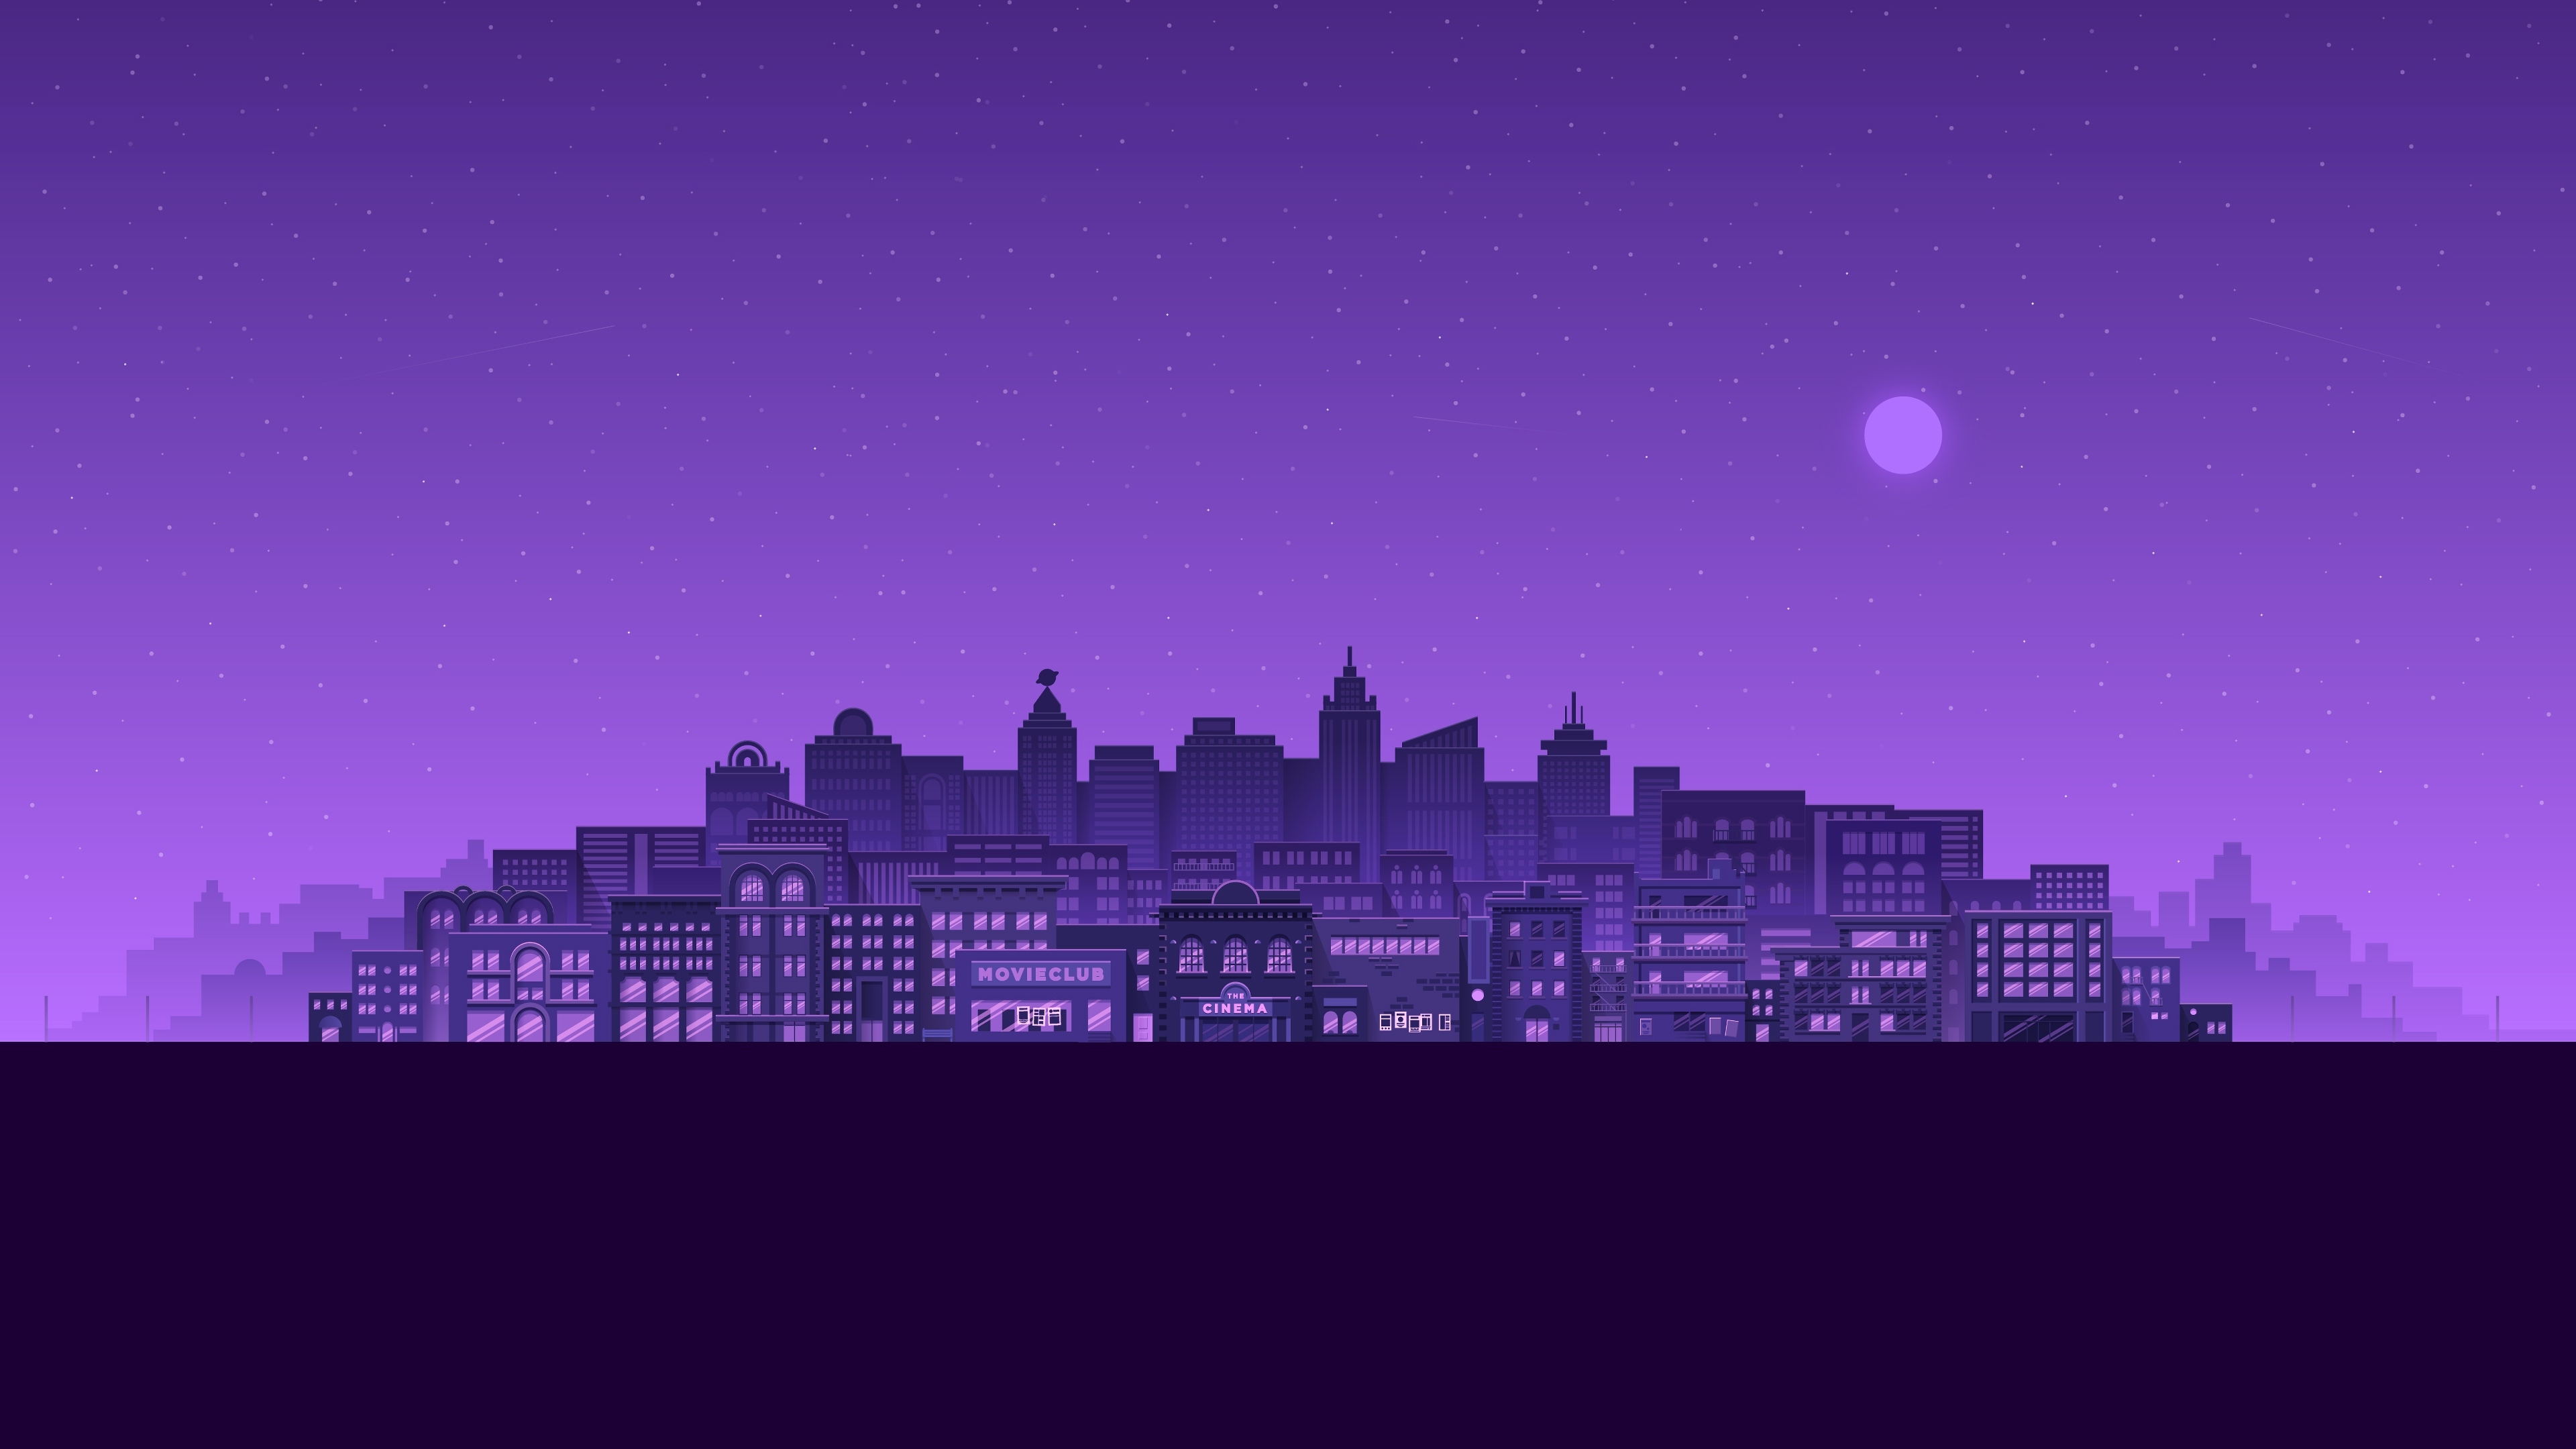 1920x1080 Purple City 1080p Laptop Full Hd Wallpaper Hd Artist 4k Wallpapers Images Photos And Background